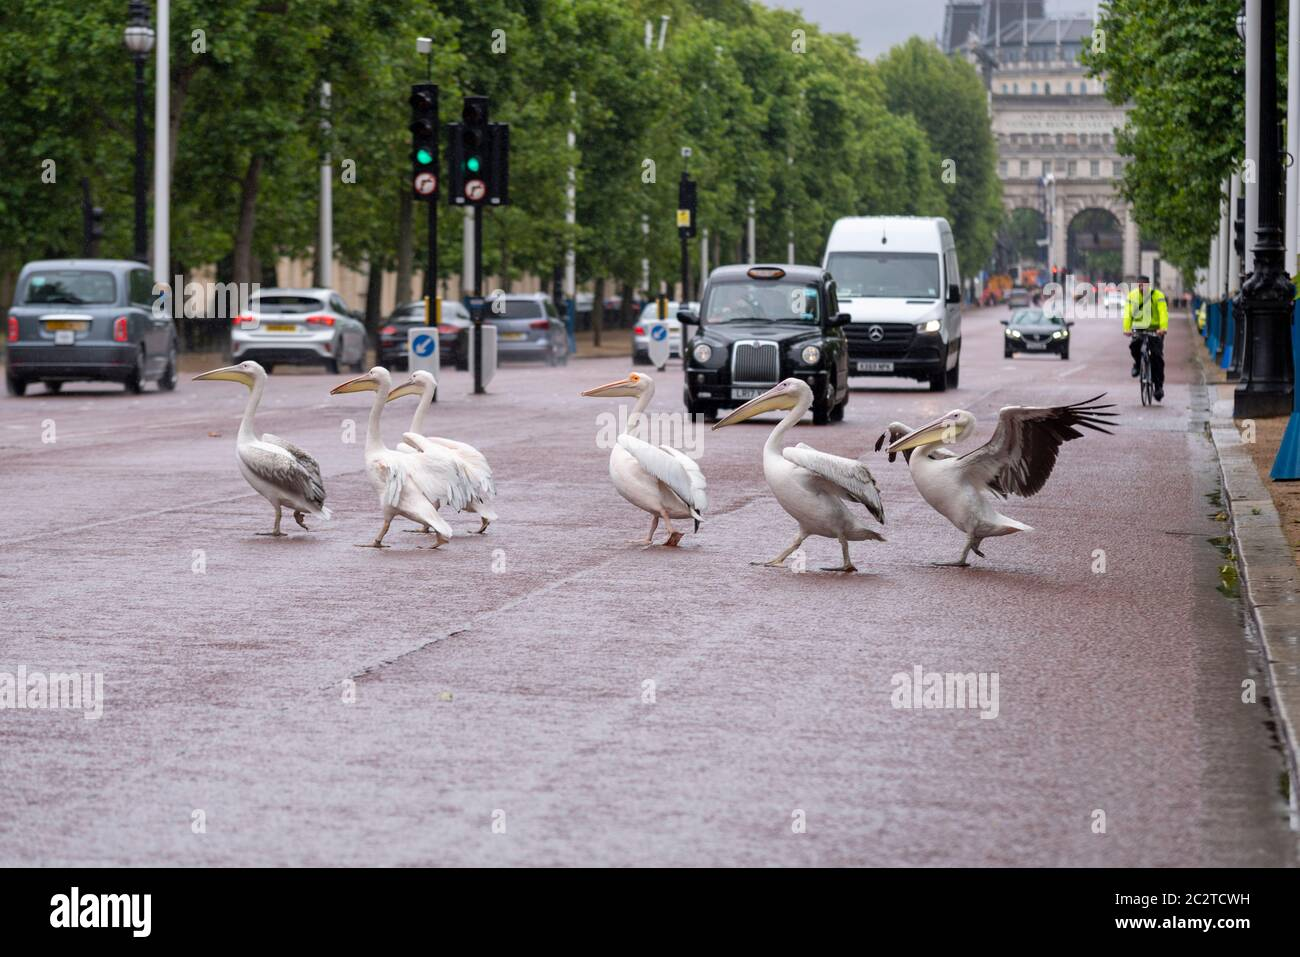 westminster-london-uk-18th-jun-2020-the-pelicans-that-live-in-st-jamess-park-decided-to-take-a-walk-across-the-mall-stopping-traffic-walking-in-the-road-park-wardens-had-to-move-them-back-2C2TCWH.jpg